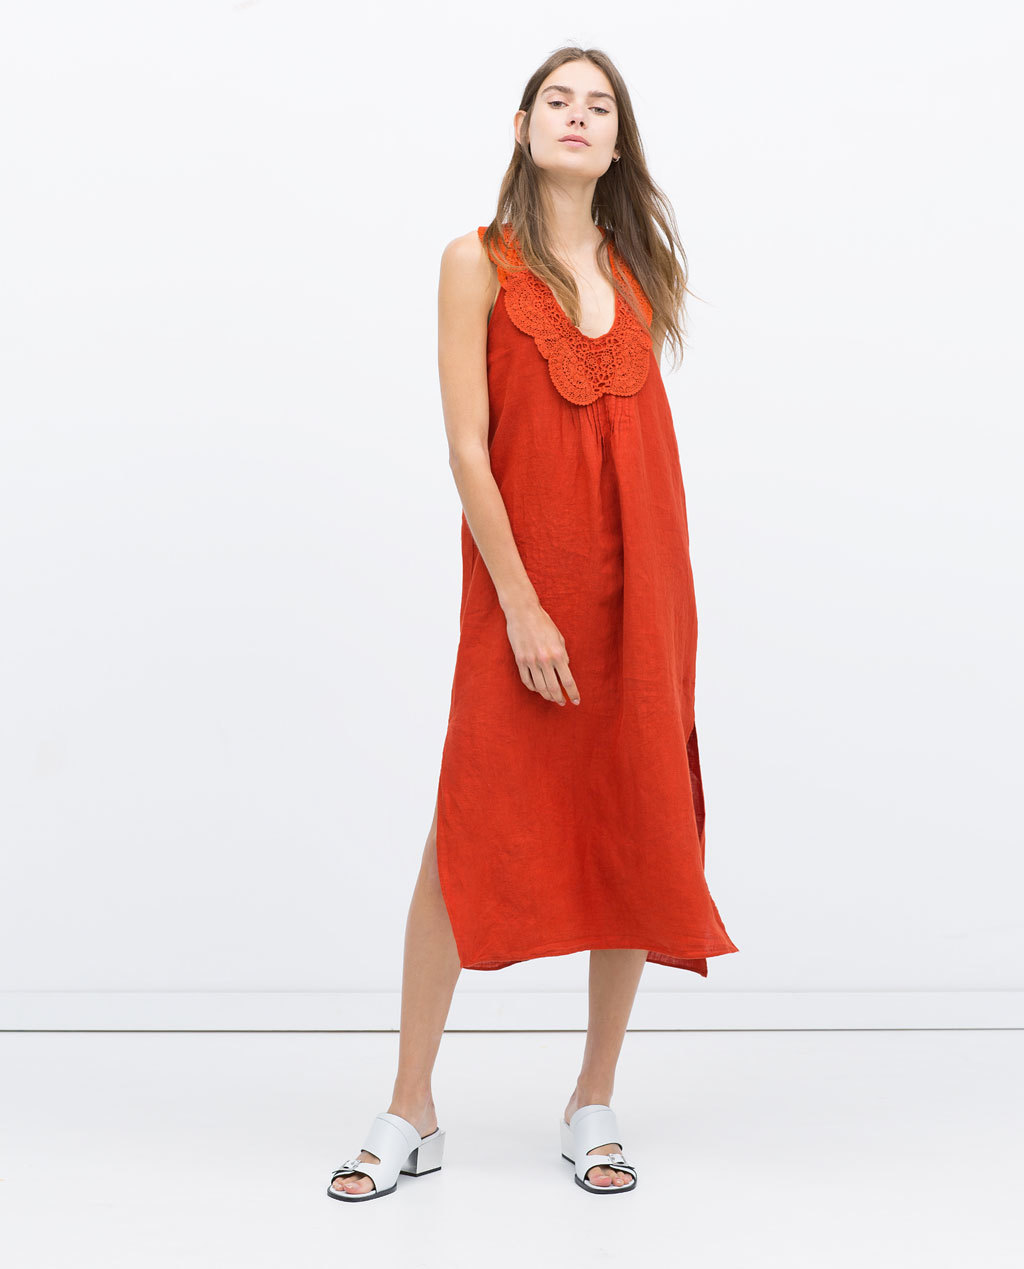 Linen Dress With Bib Front - style: tunic; length: calf length; fit: loose; pattern: plain; sleeve style: sleeveless; predominant colour: bright orange; occasions: casual; neckline: scoop; sleeve length: sleeveless; texture group: linen; pattern type: fabric; season: s/s 2015; wardrobe: highlight